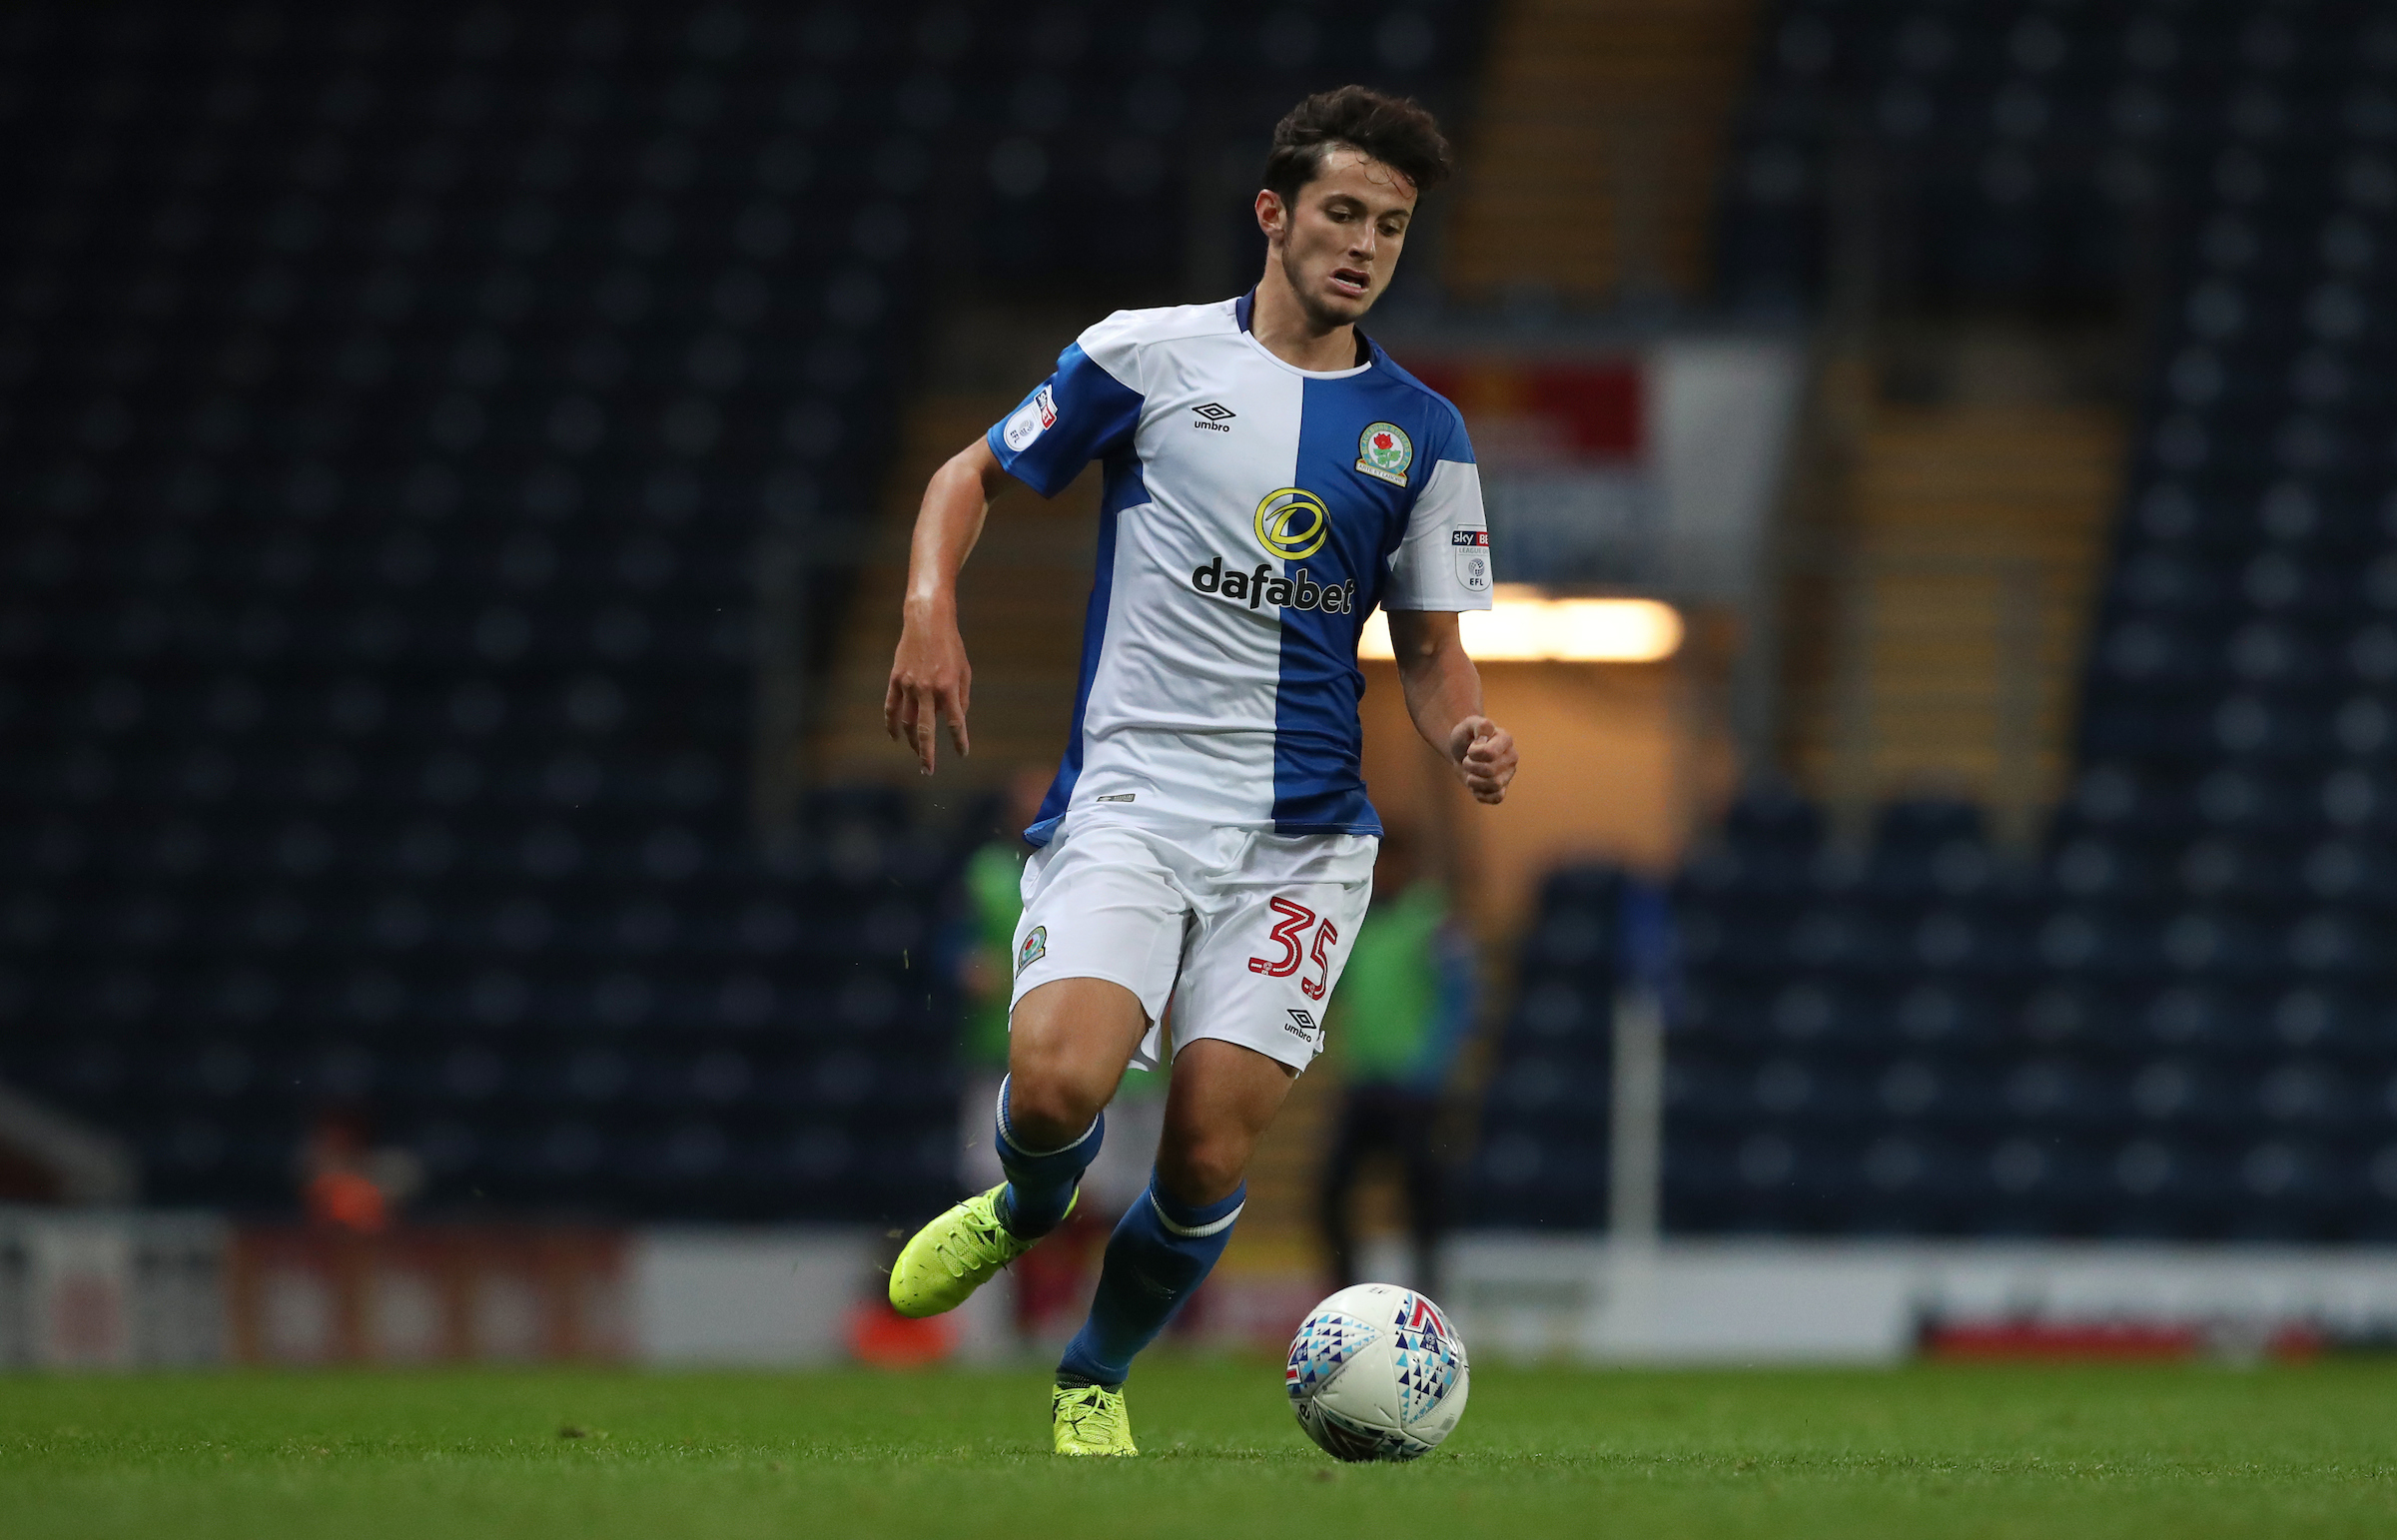 Lewis Travis was among the Rovers youngsters to feature in the Checkatrade Trophy win over Stoke City Under-21s